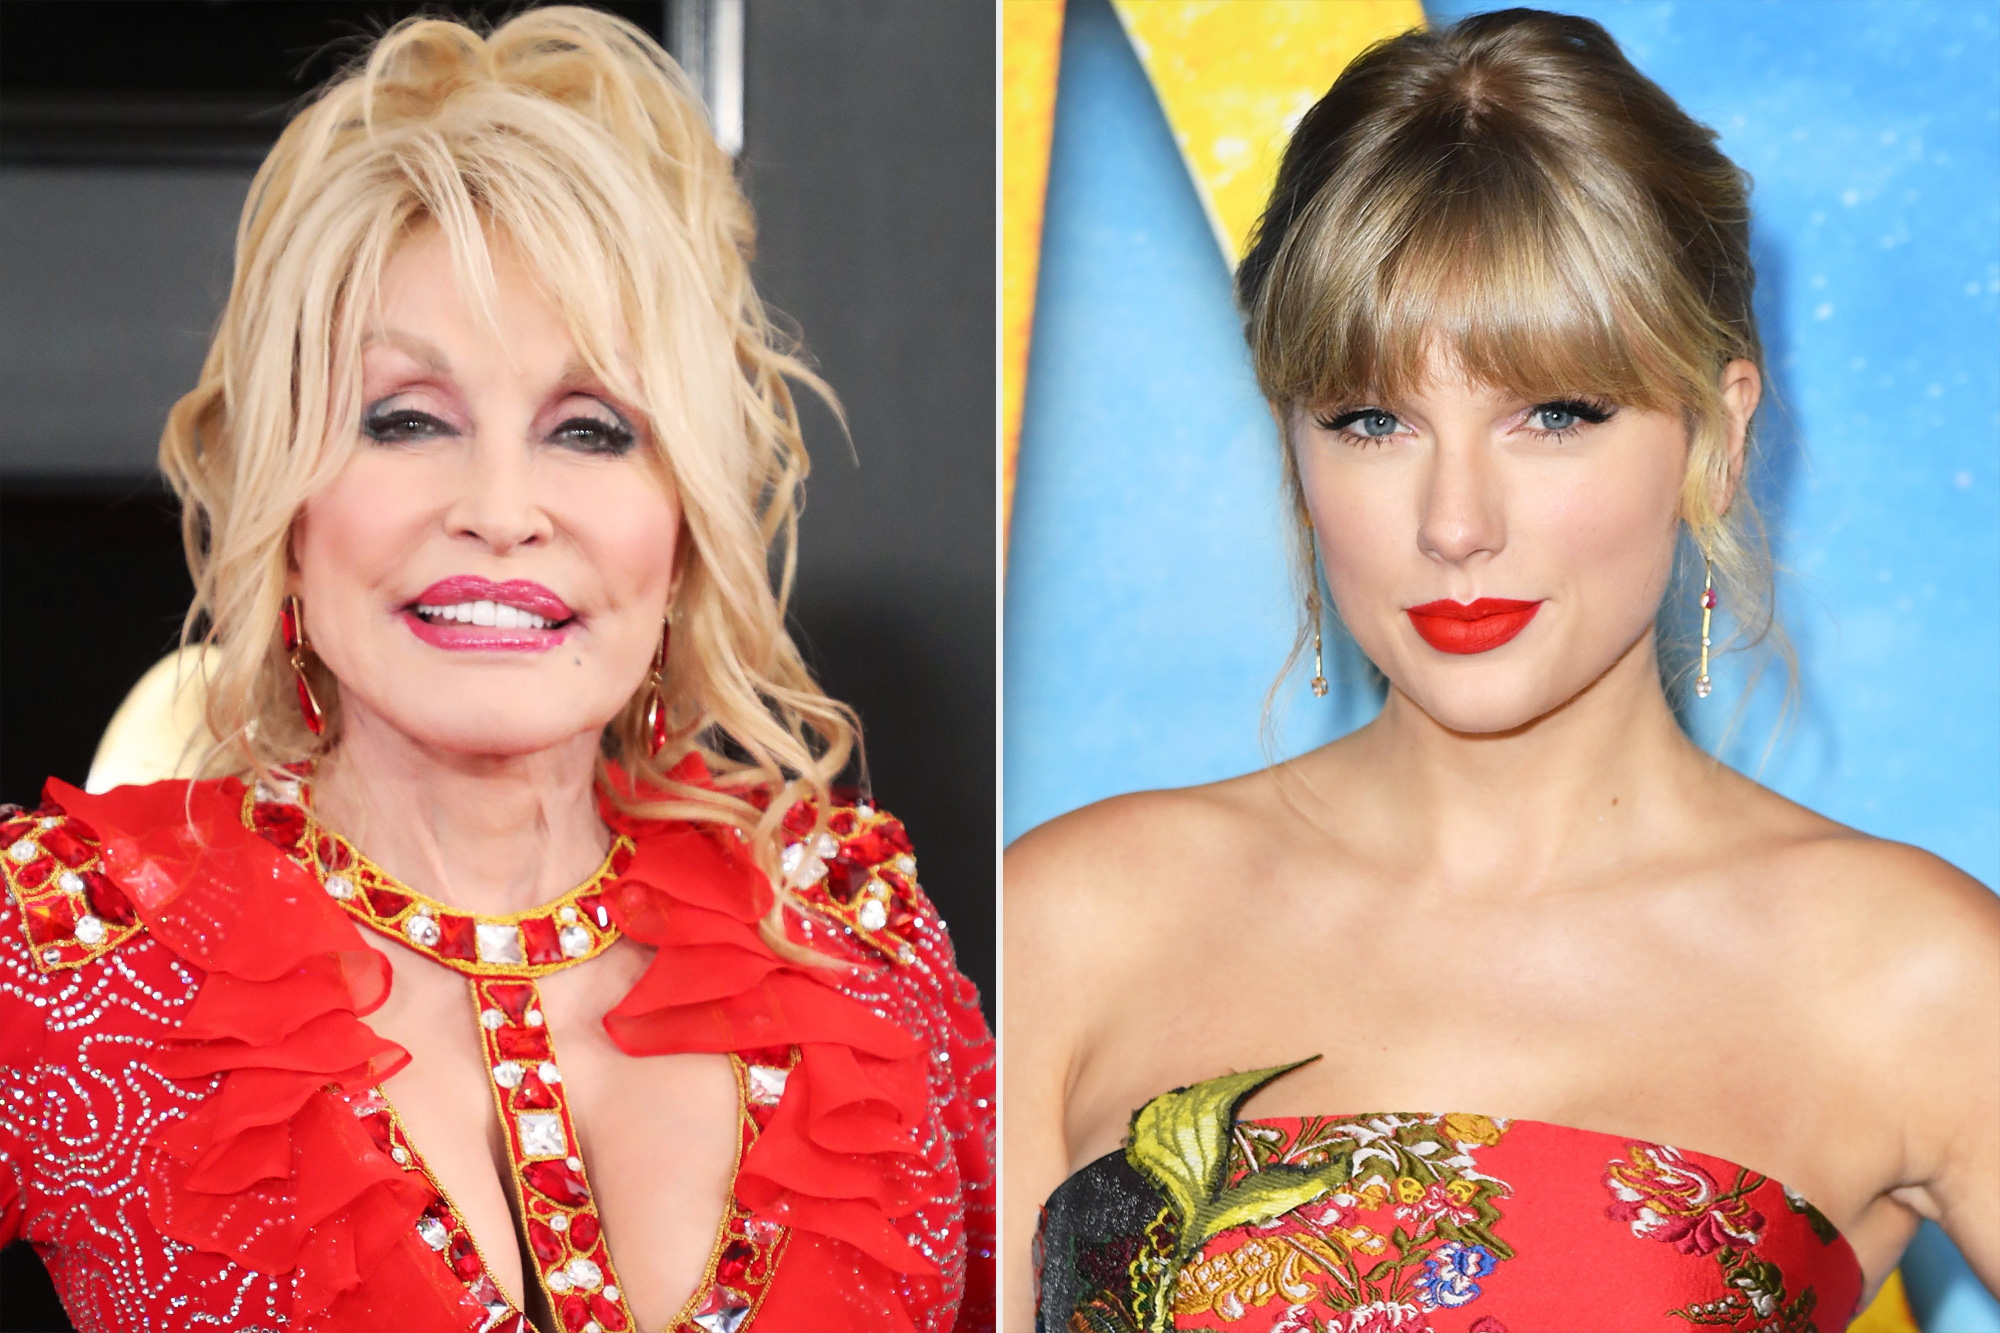 Dolly Parton and Taylor Swift